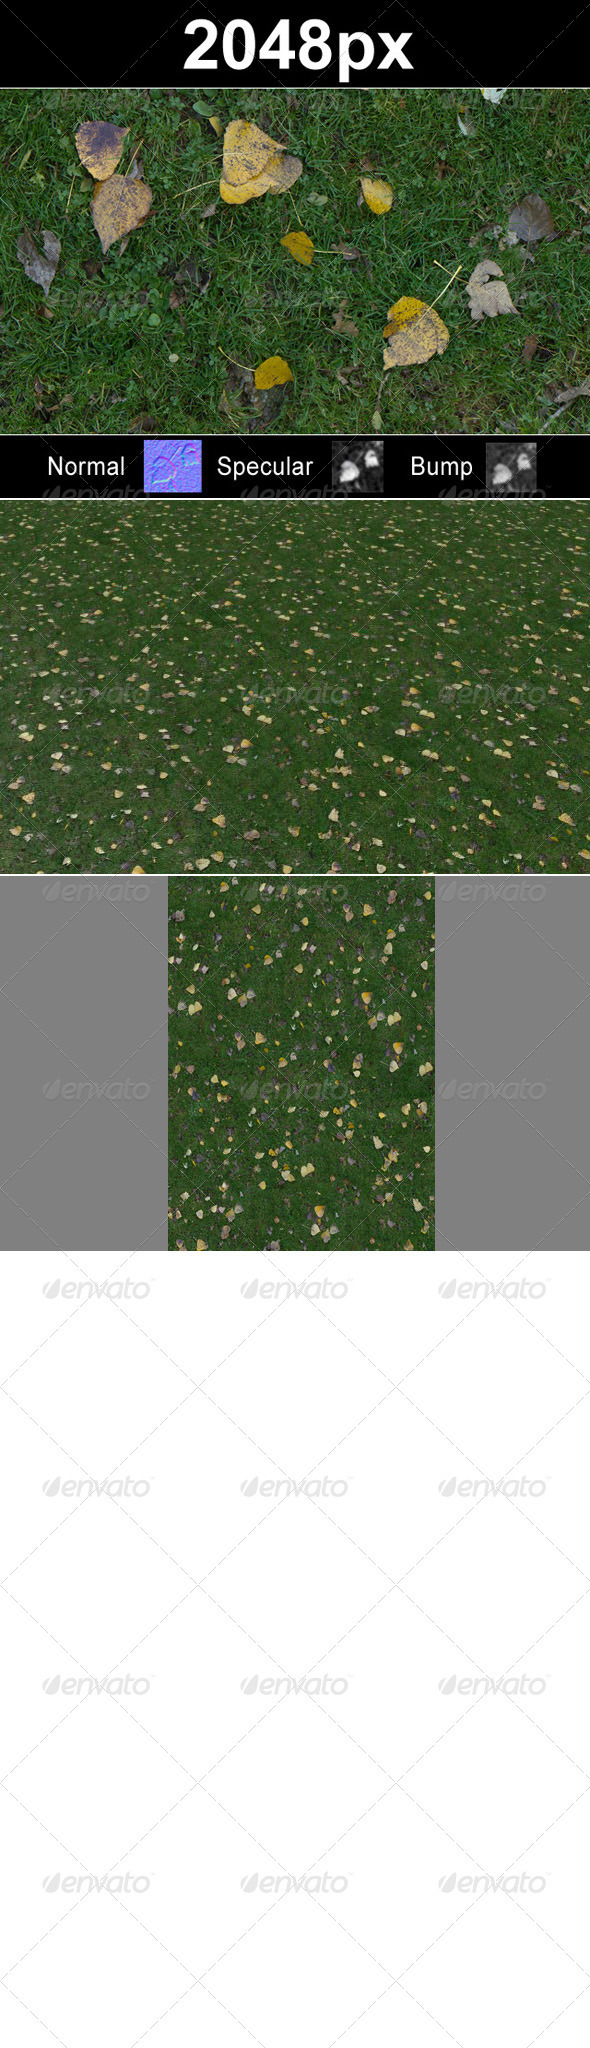 3DOcean Lawn 2 with leaves 1506320